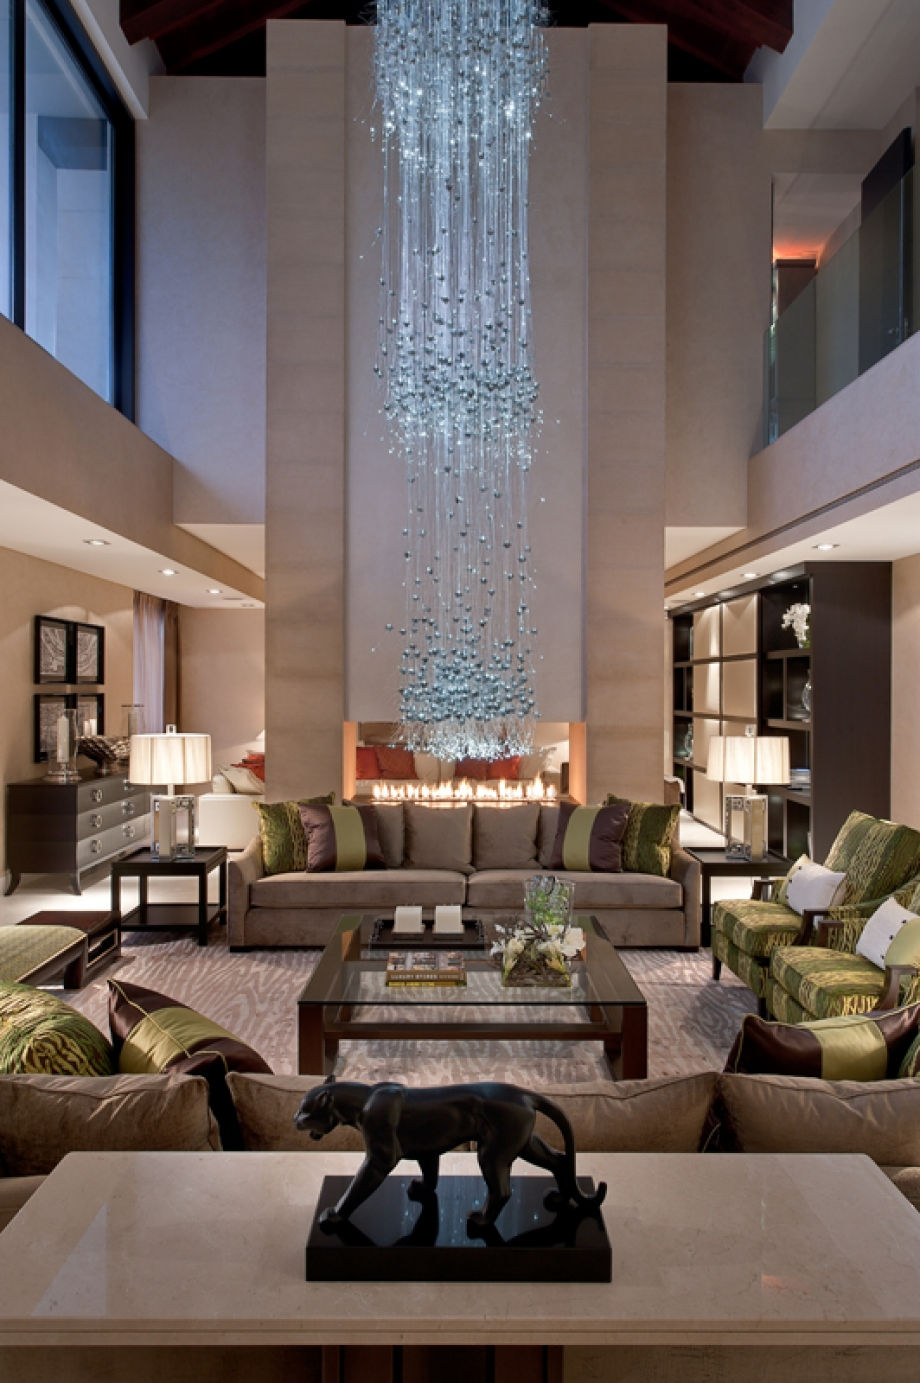 Luxury Home Interior Design Luxury Interior Designer: Luxury Chandeliers For Living Room